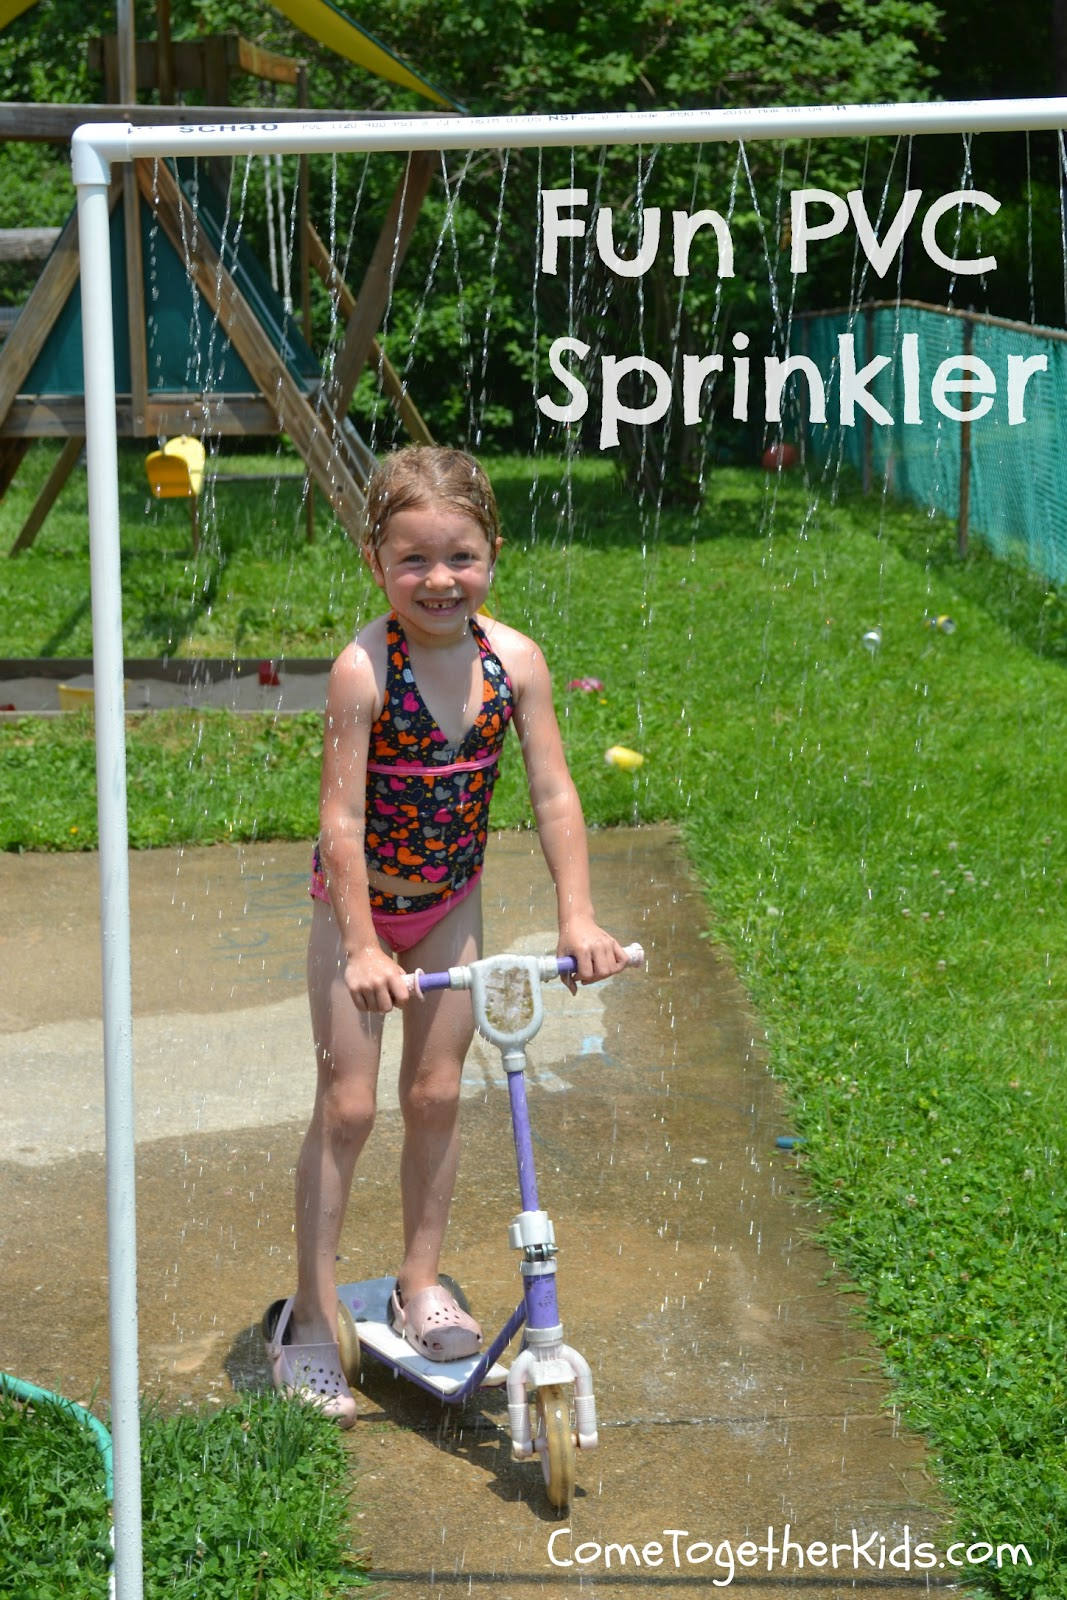 Fun PVC Sprinkler